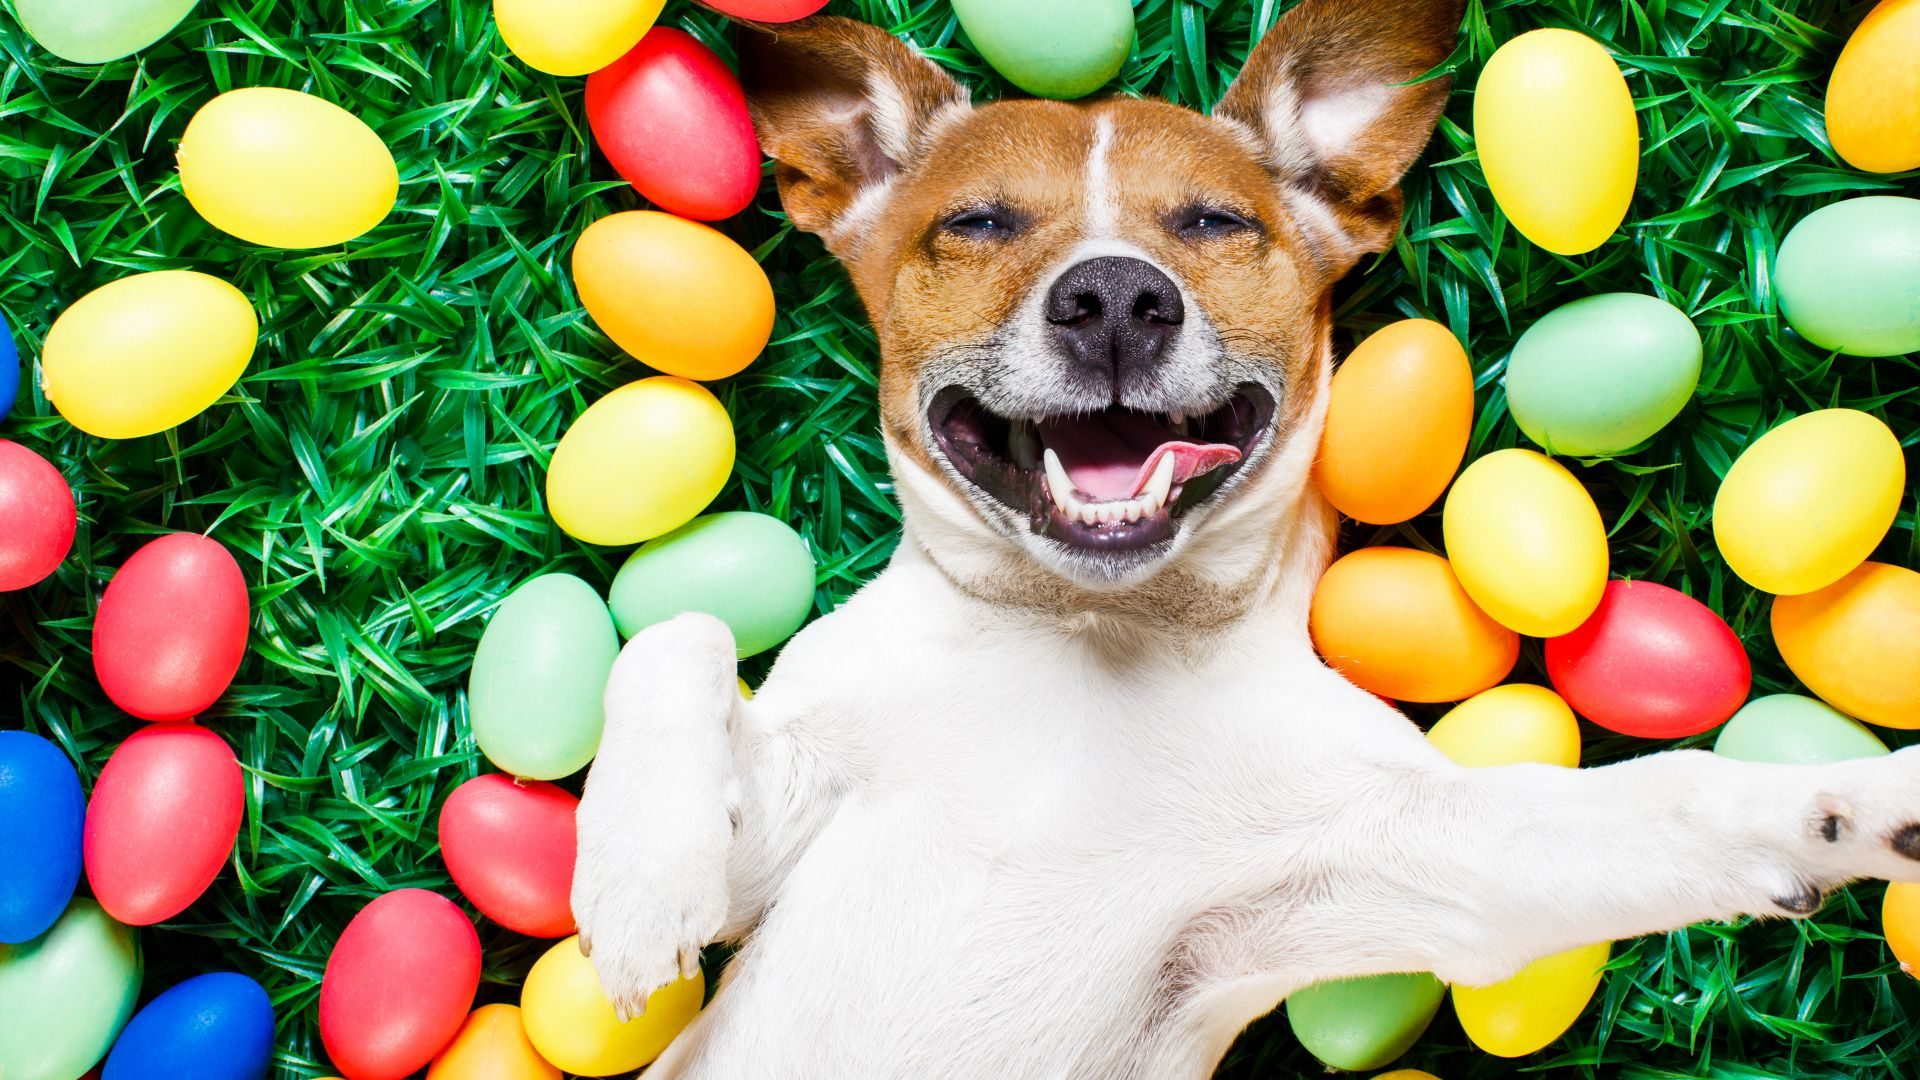 Easter, eggs, dog, 5k (horizontal)